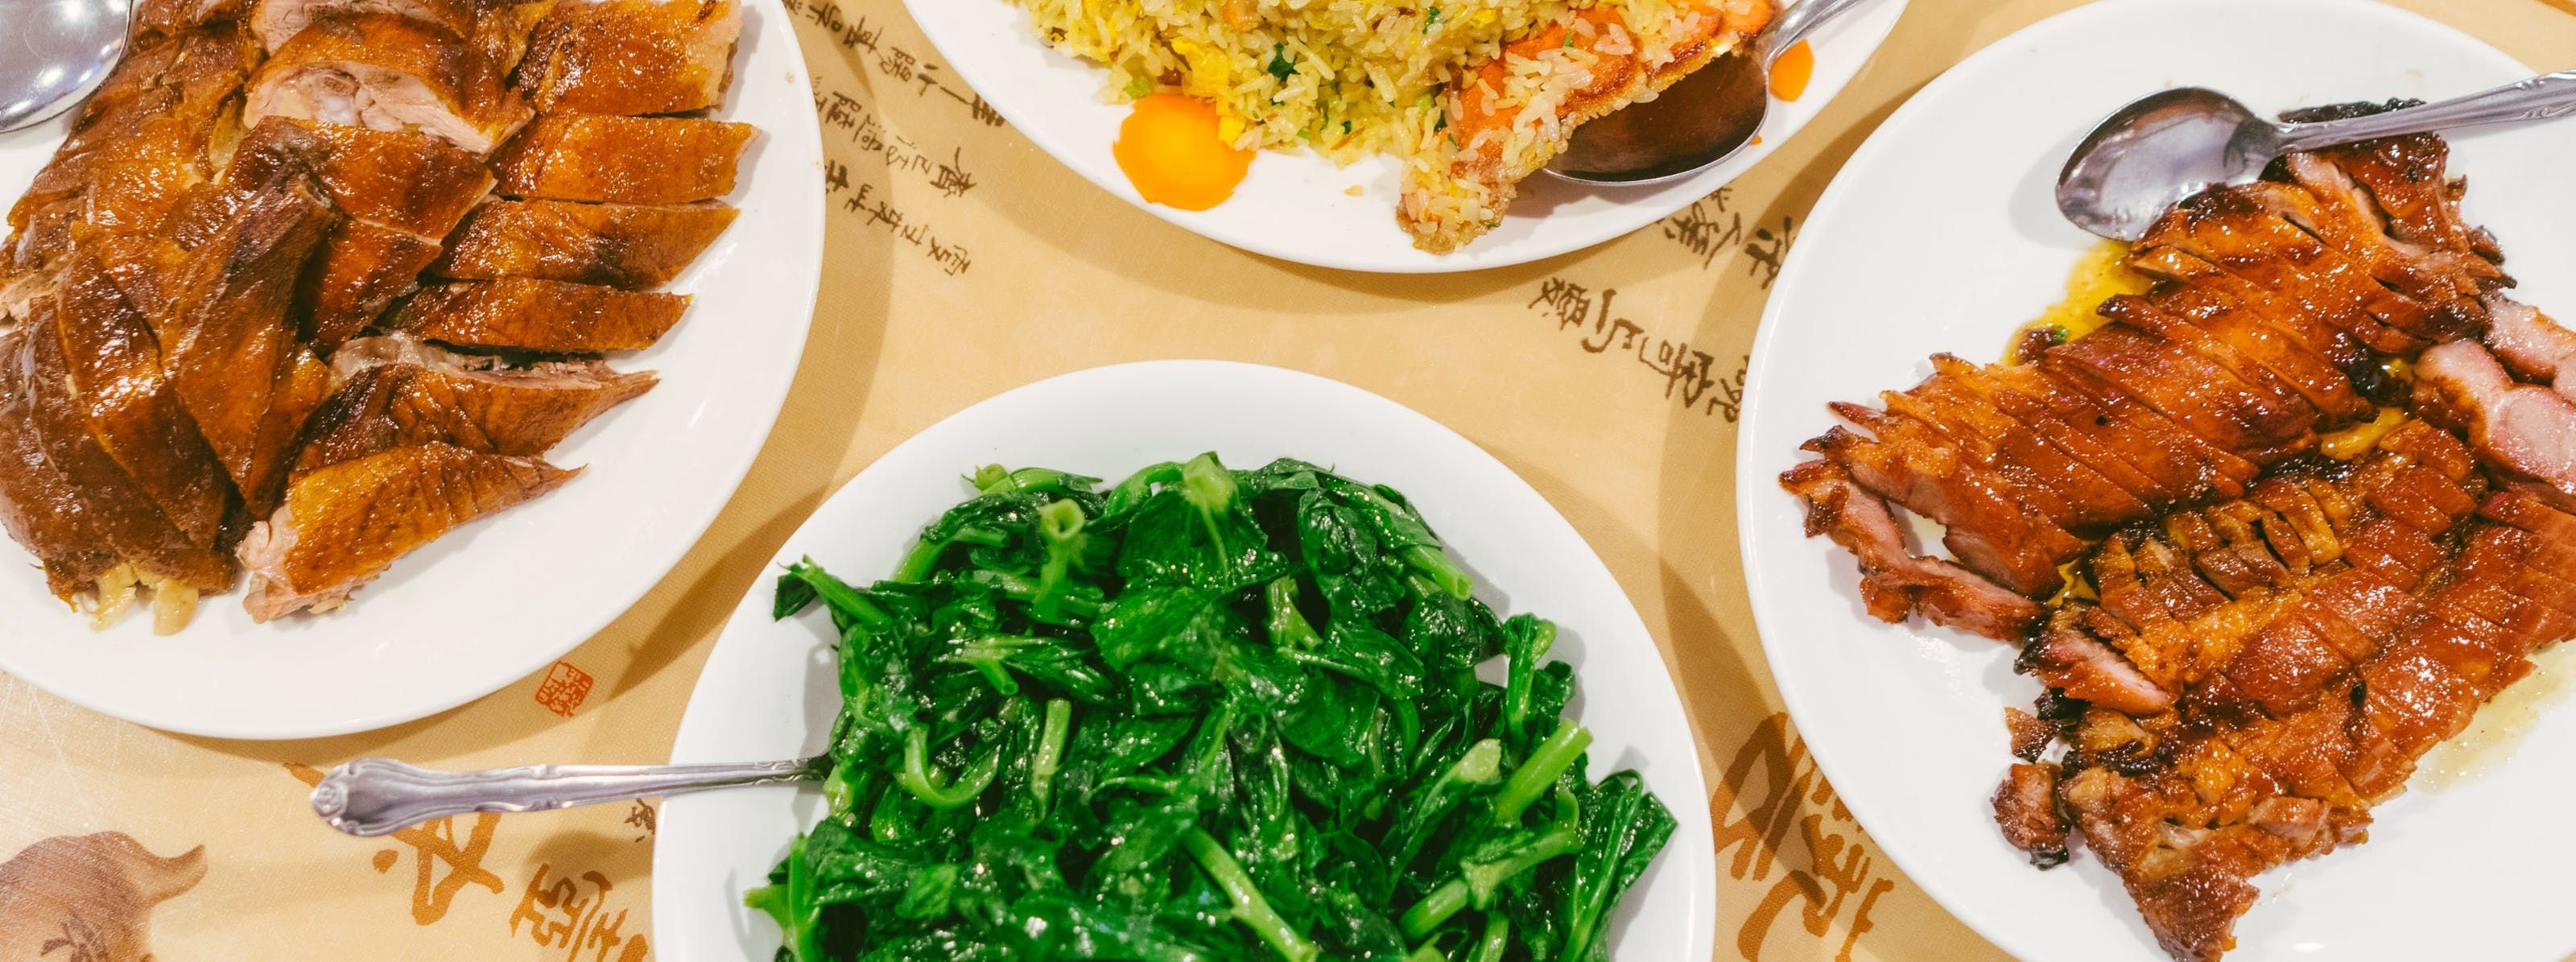 Where To Get Chinese Delivery And Takeout In Nyc New York The Infatuation In 2020 Nyc Food Chinese Delivery Food